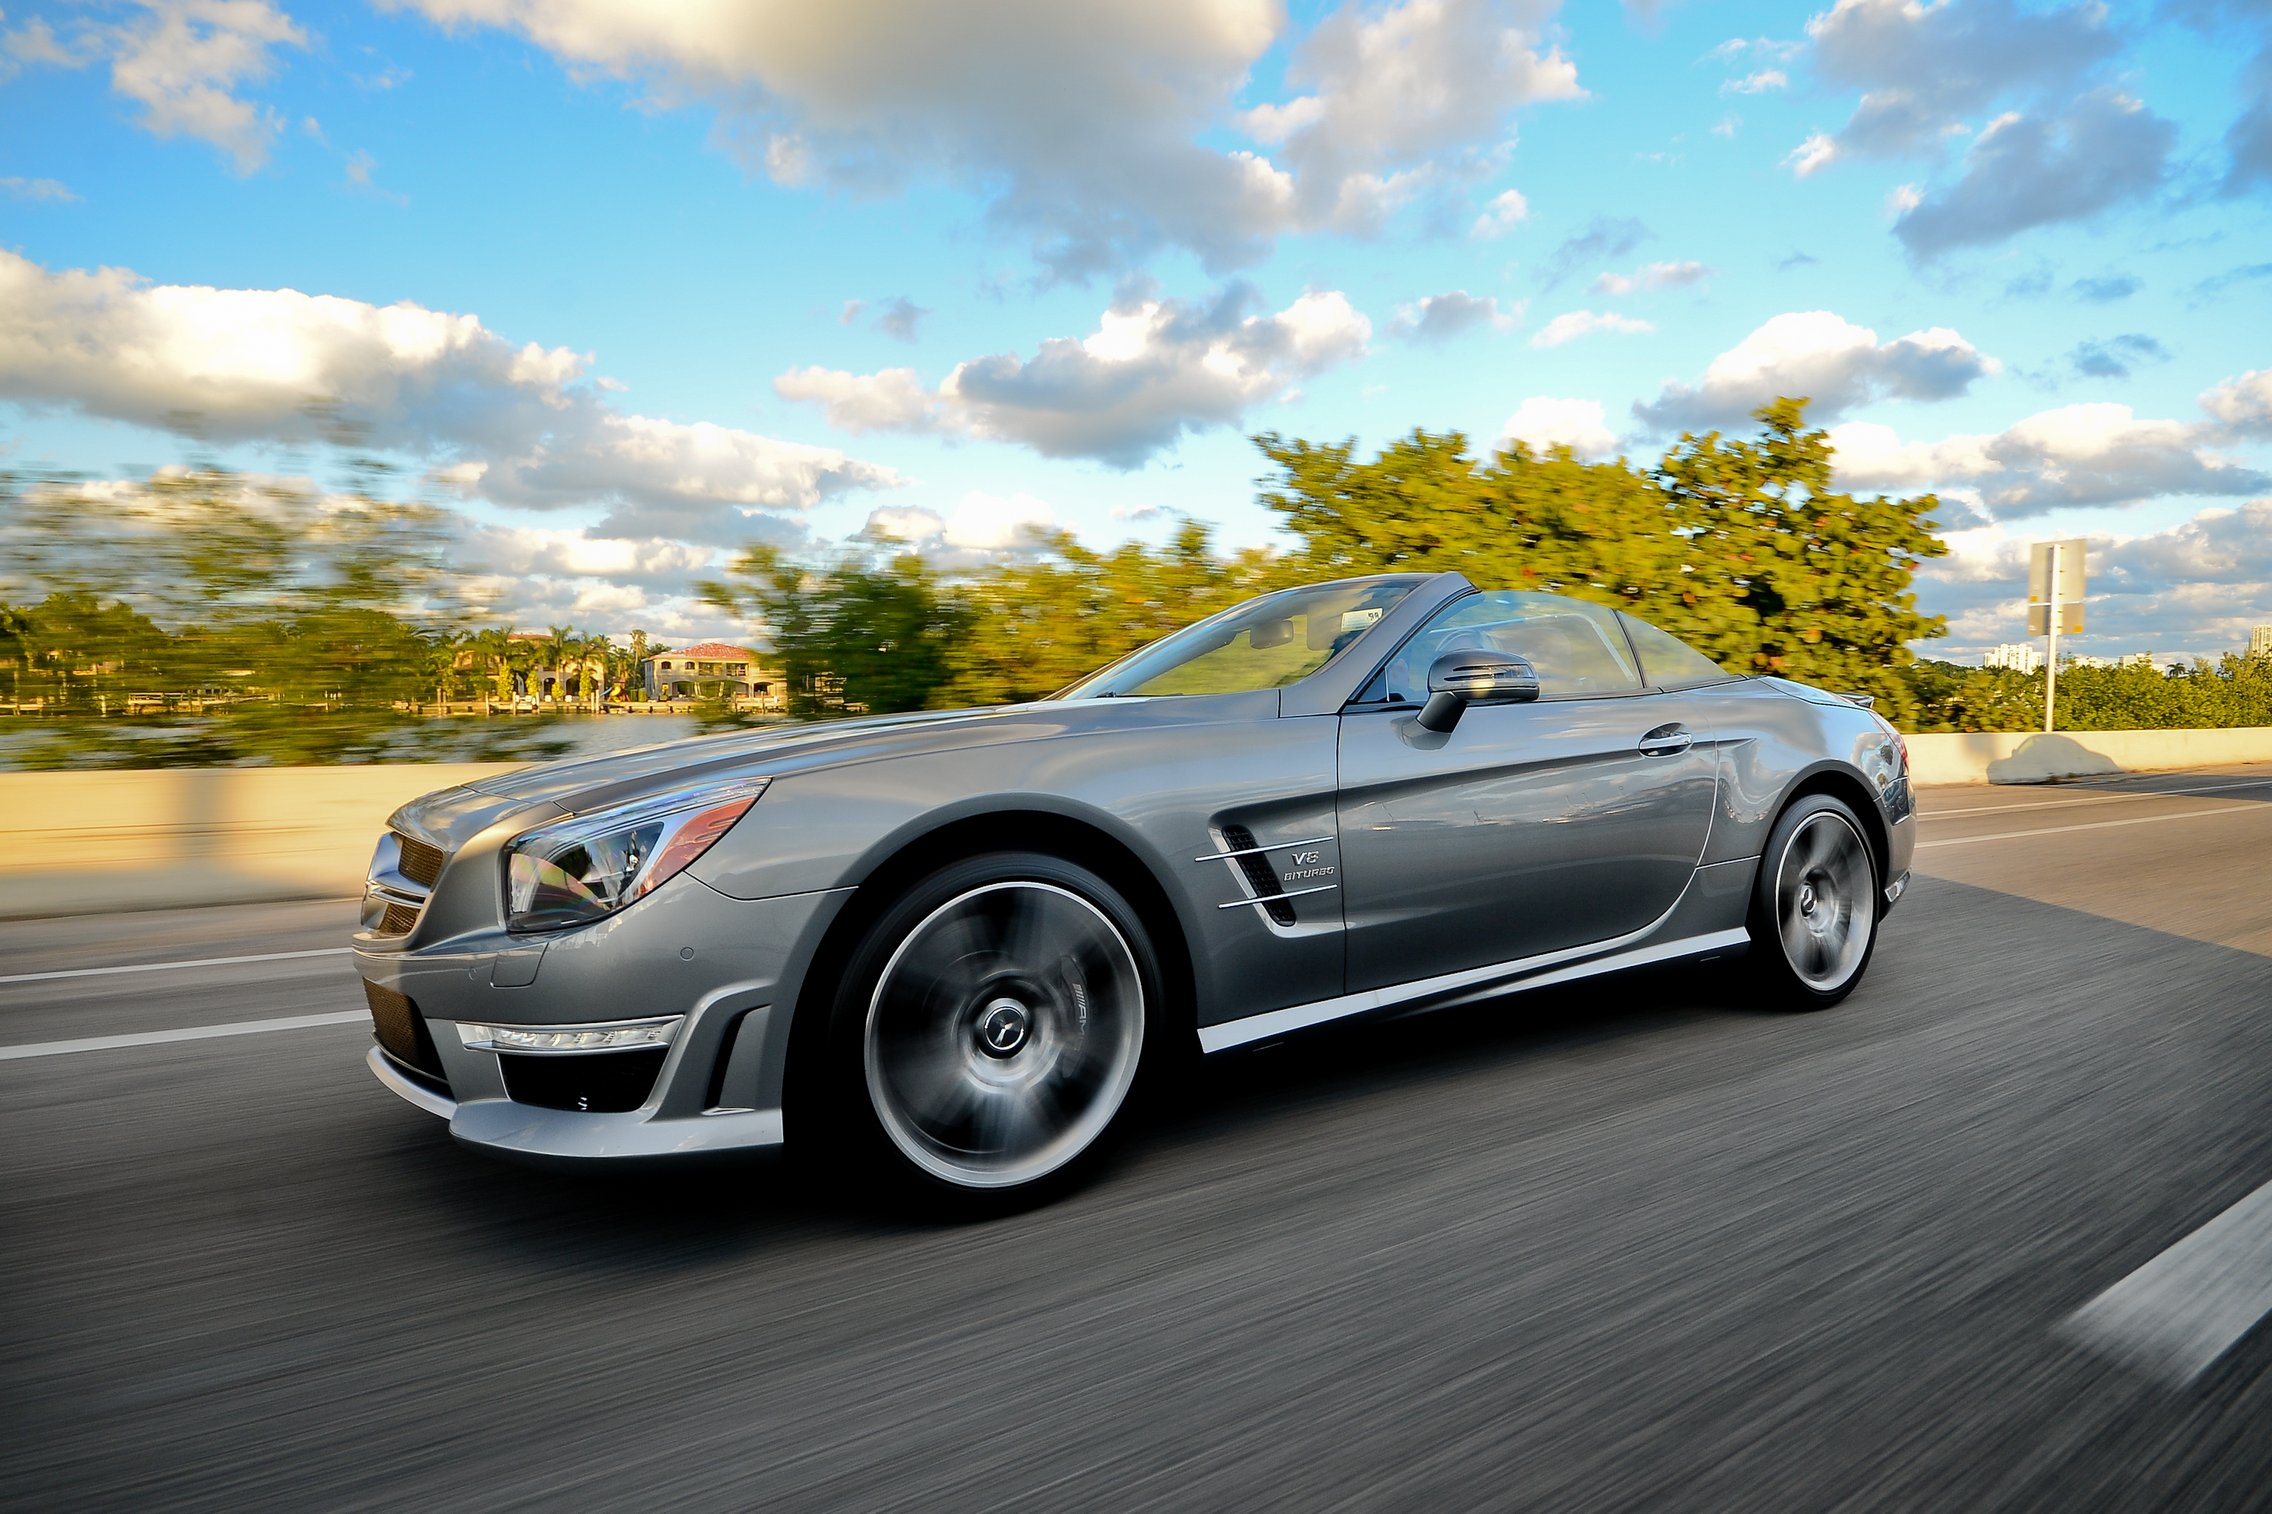 Mercedes benz sl 550 rentals rent a mercedes benz sl 550 for Mercedes benz service miami